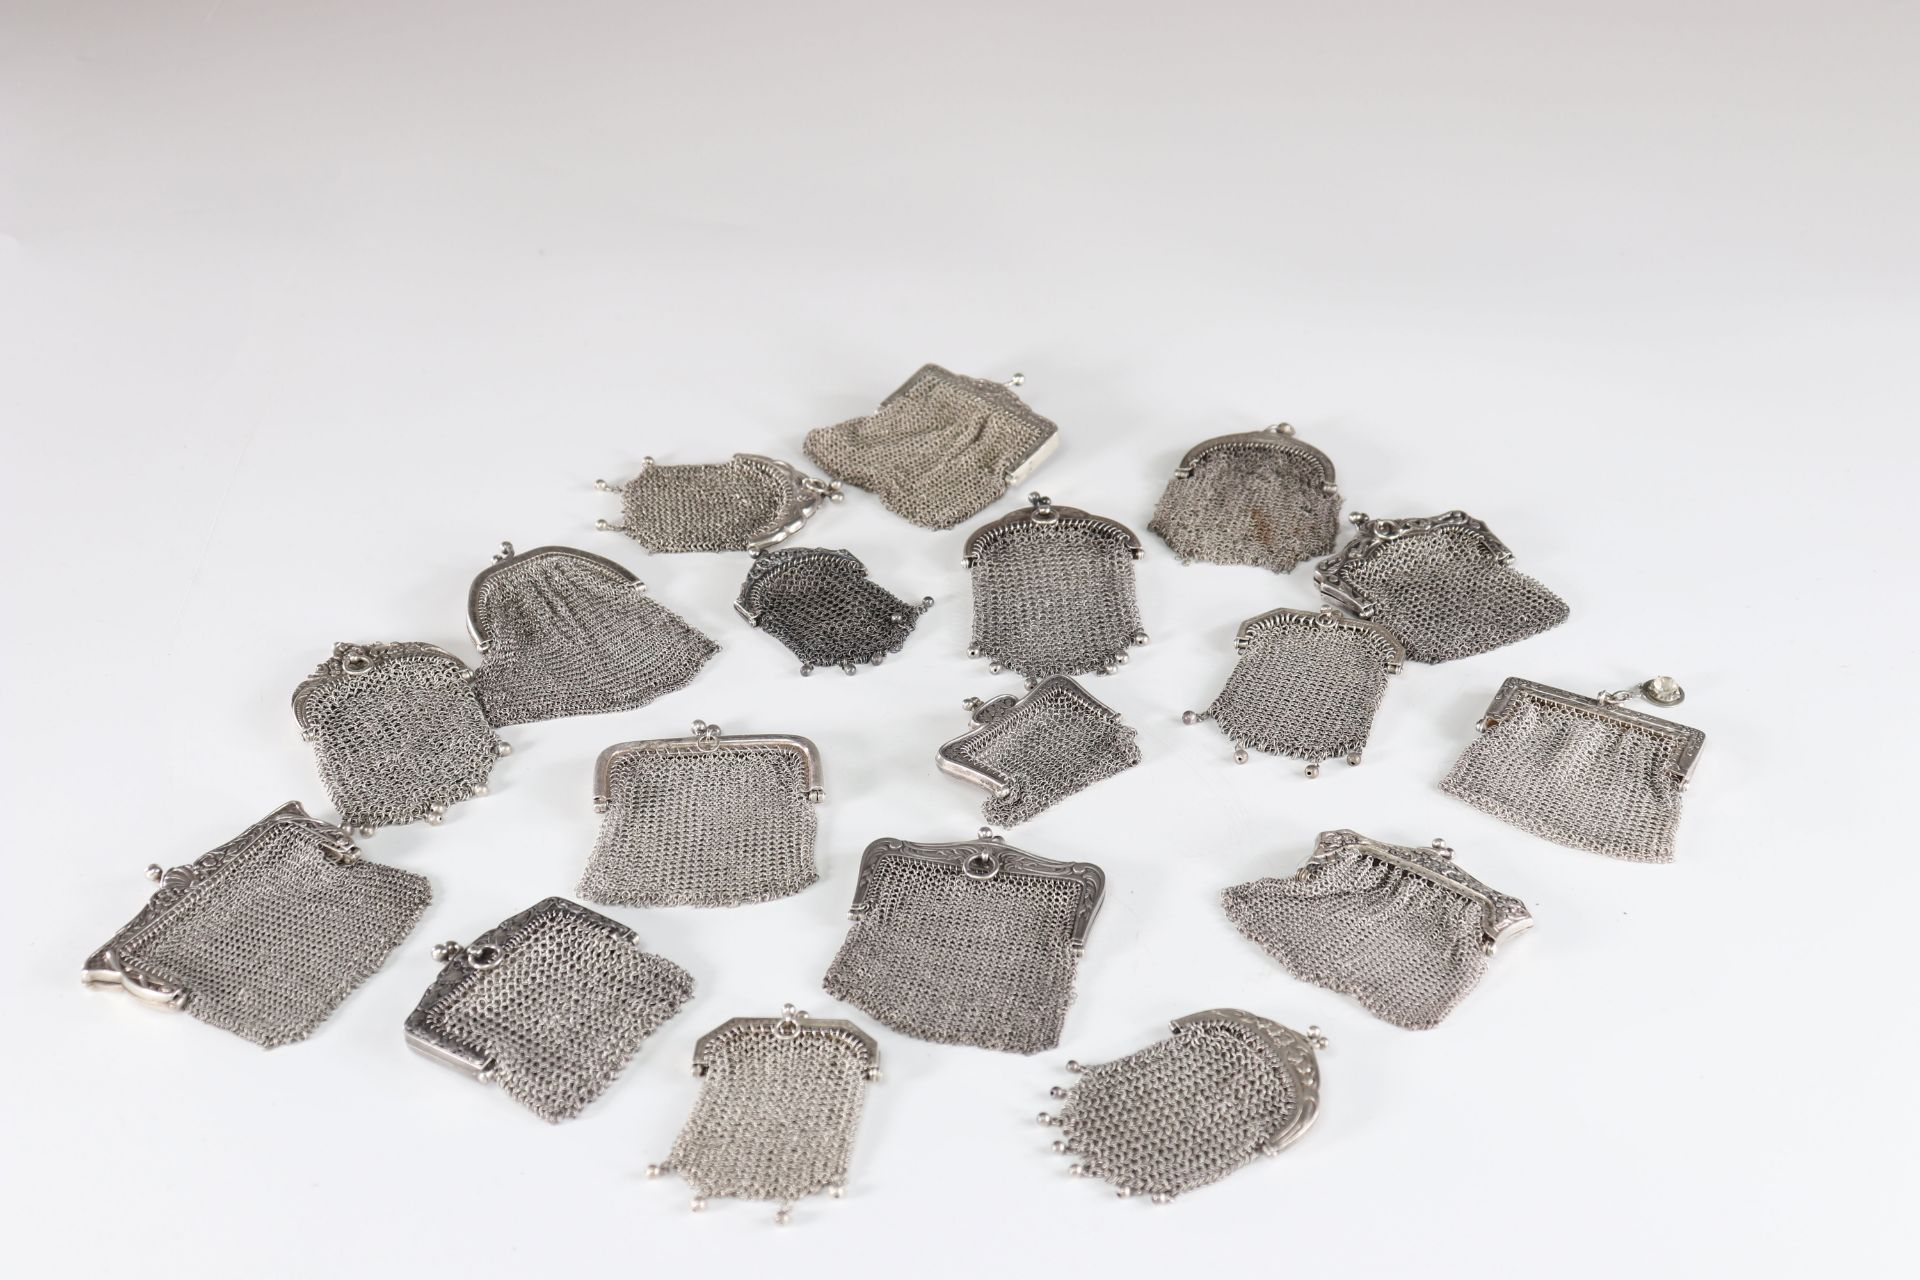 Lot of 18 silver purses 800 thousandths chainmail - Image 2 of 2